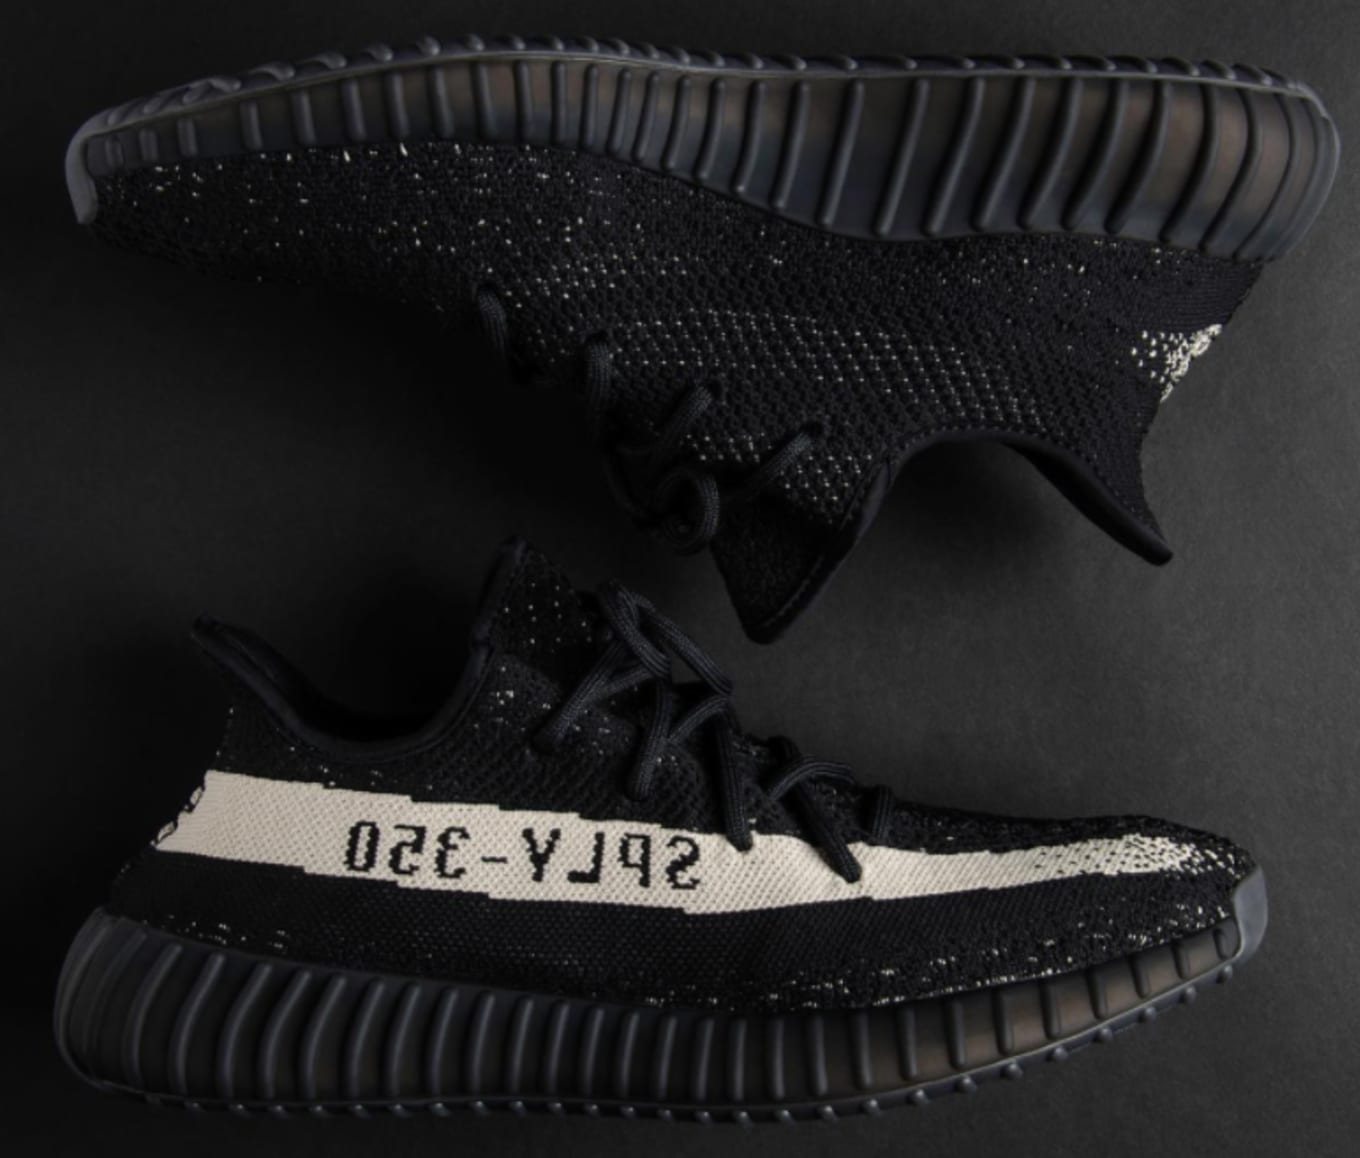 0b1ccf0725c Adidas Yeezy 350 Boost V2 Black White Release Date | Sole Collector